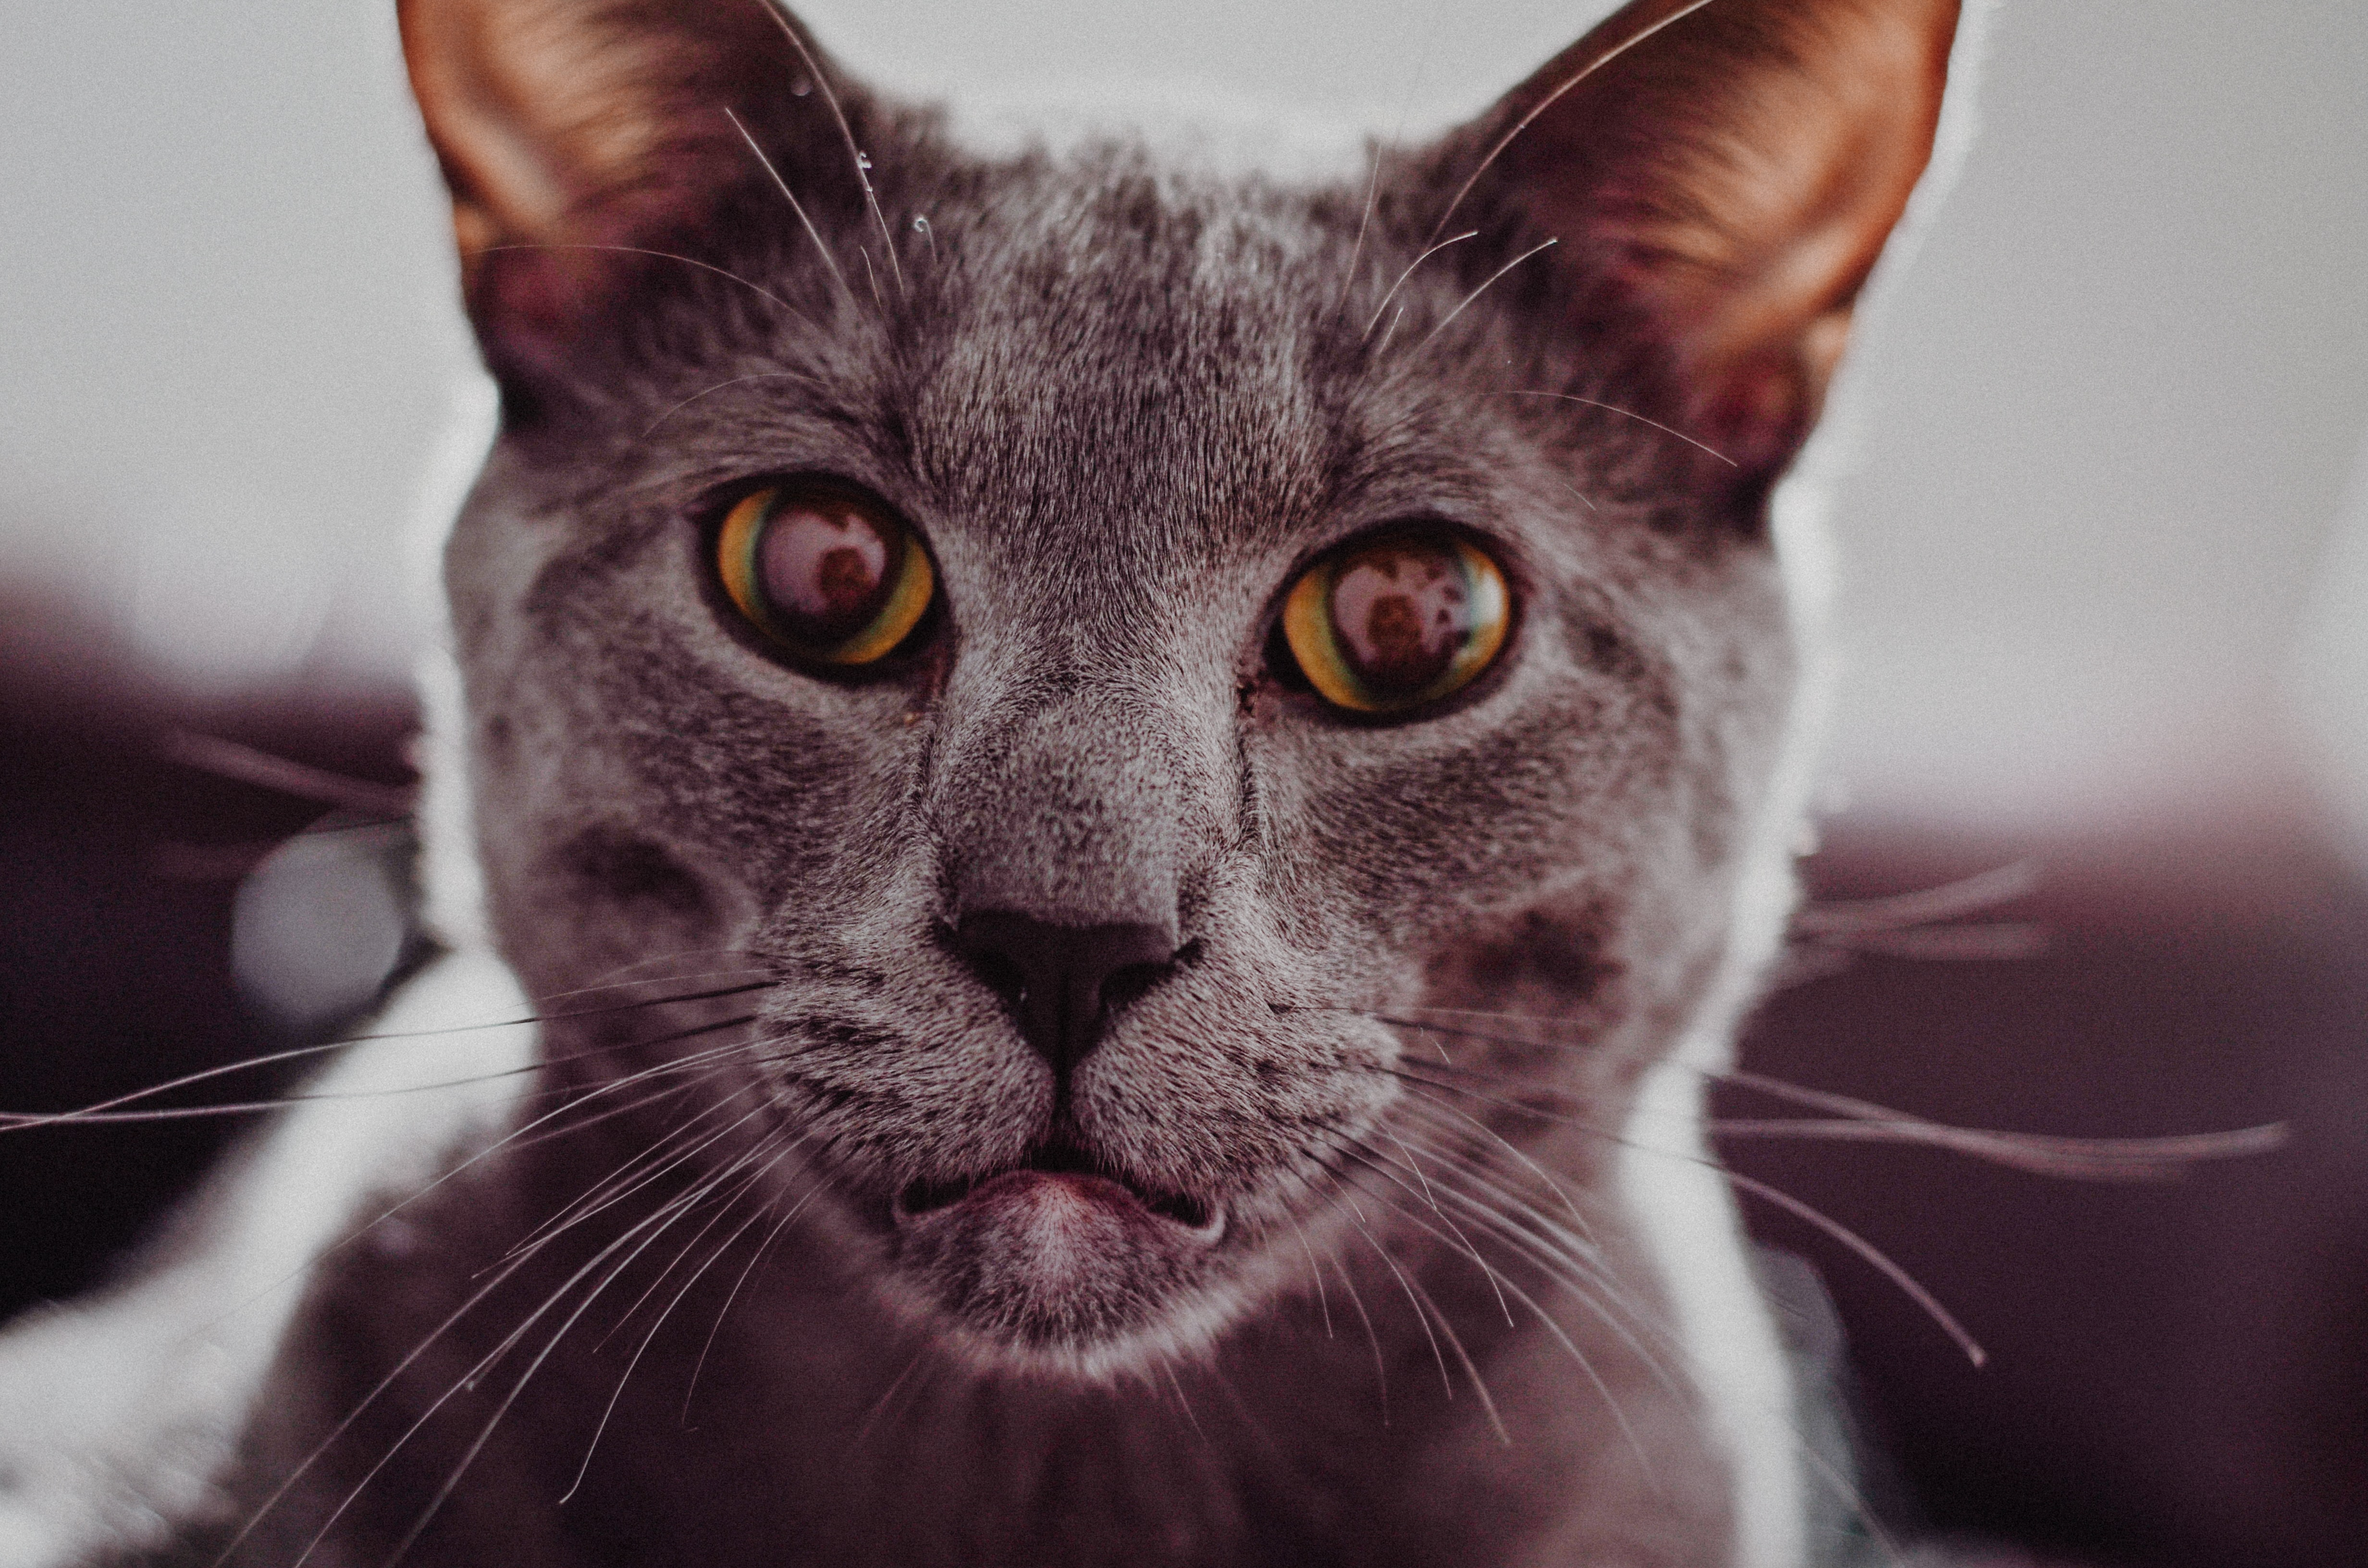 Close-up of a gray short-haired cat looking straight at the camera